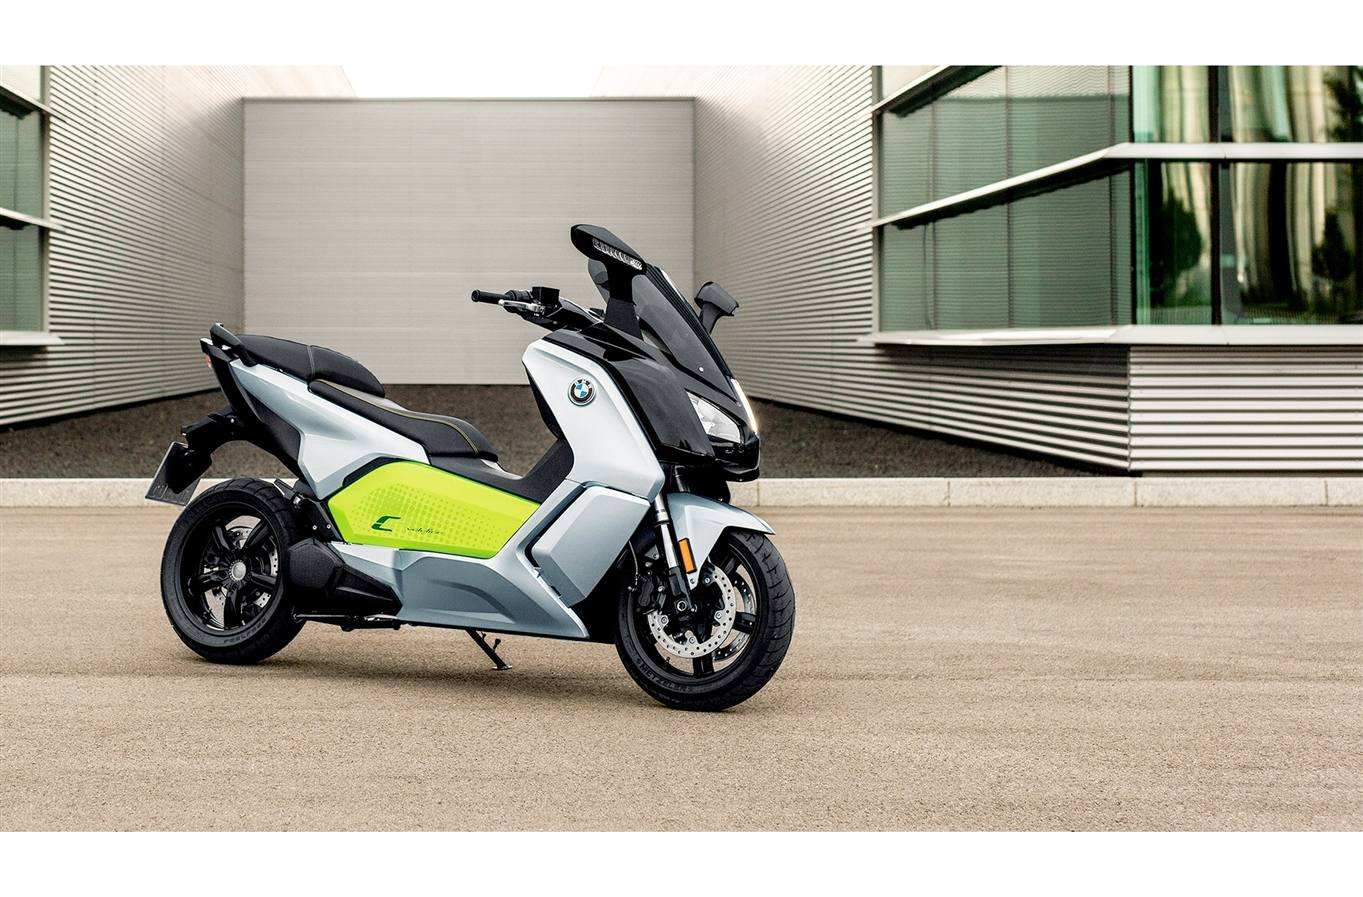 2018 Bmw C Evolution For Sale In Las Vegas Nv Freedom Euro Cycle